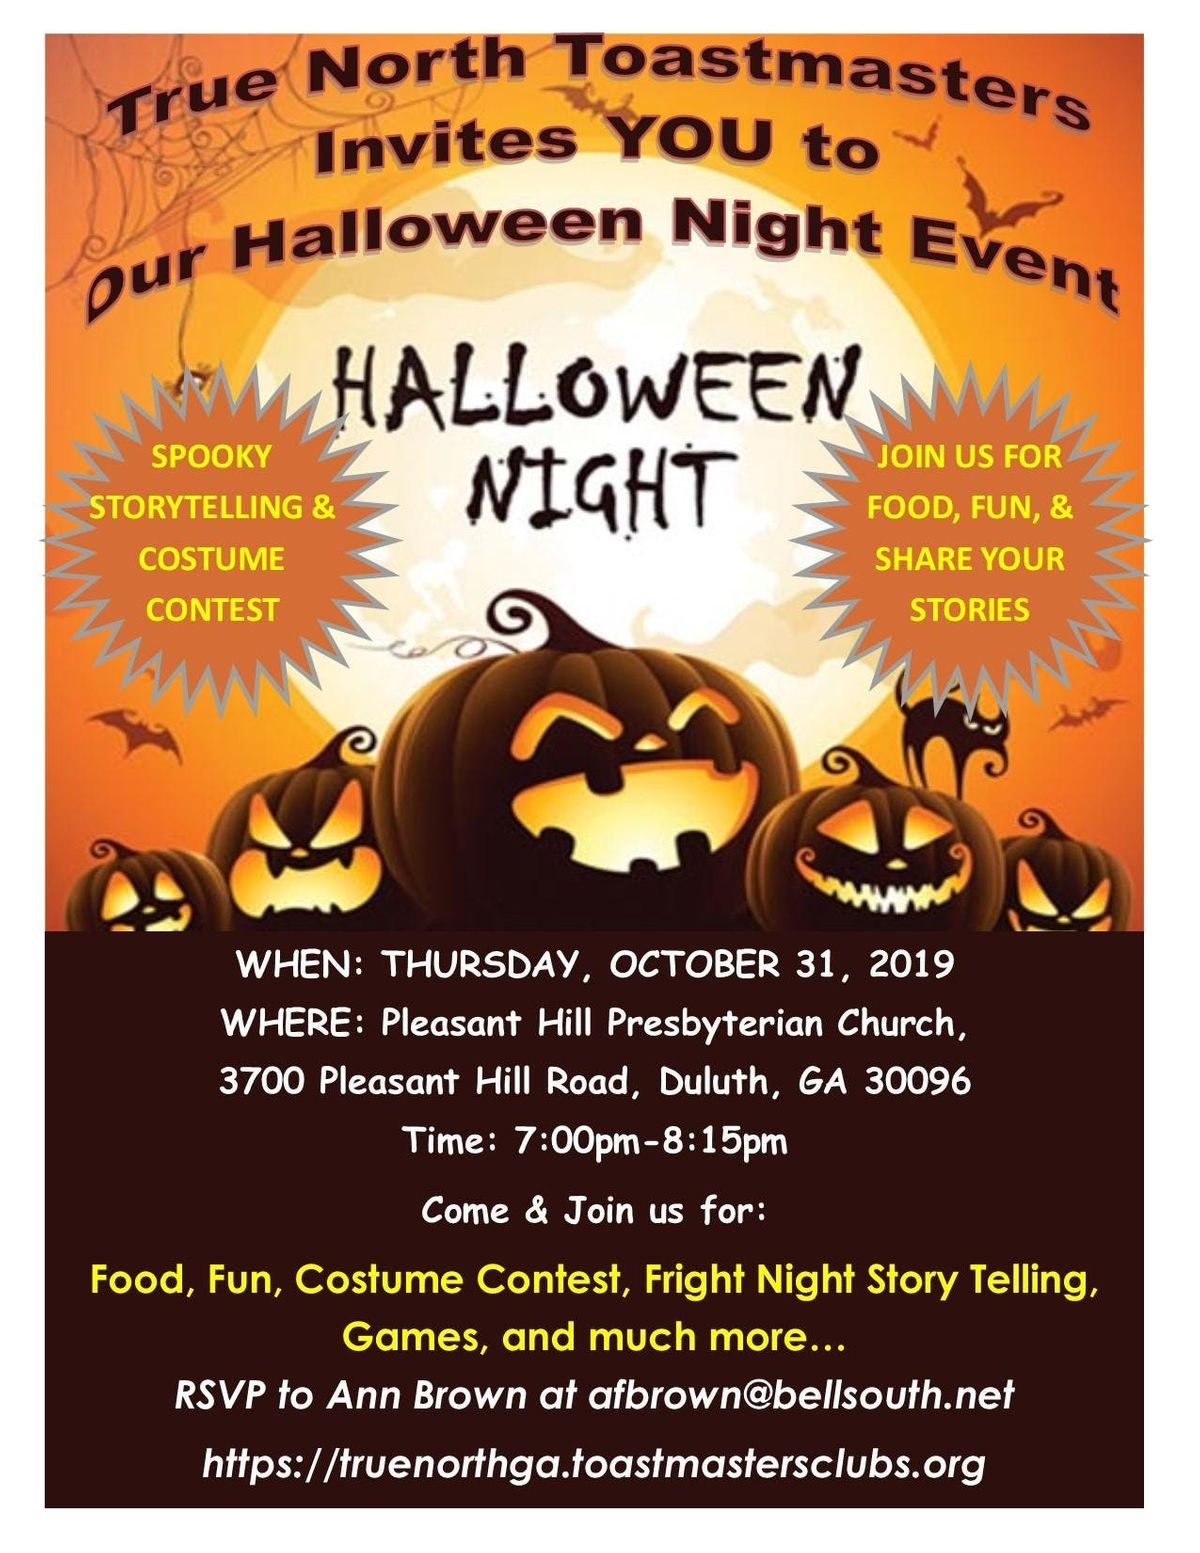 Duluth Halloween Events 2020.Halloween Story Telling Event At Pleasant Hill Presbyterian